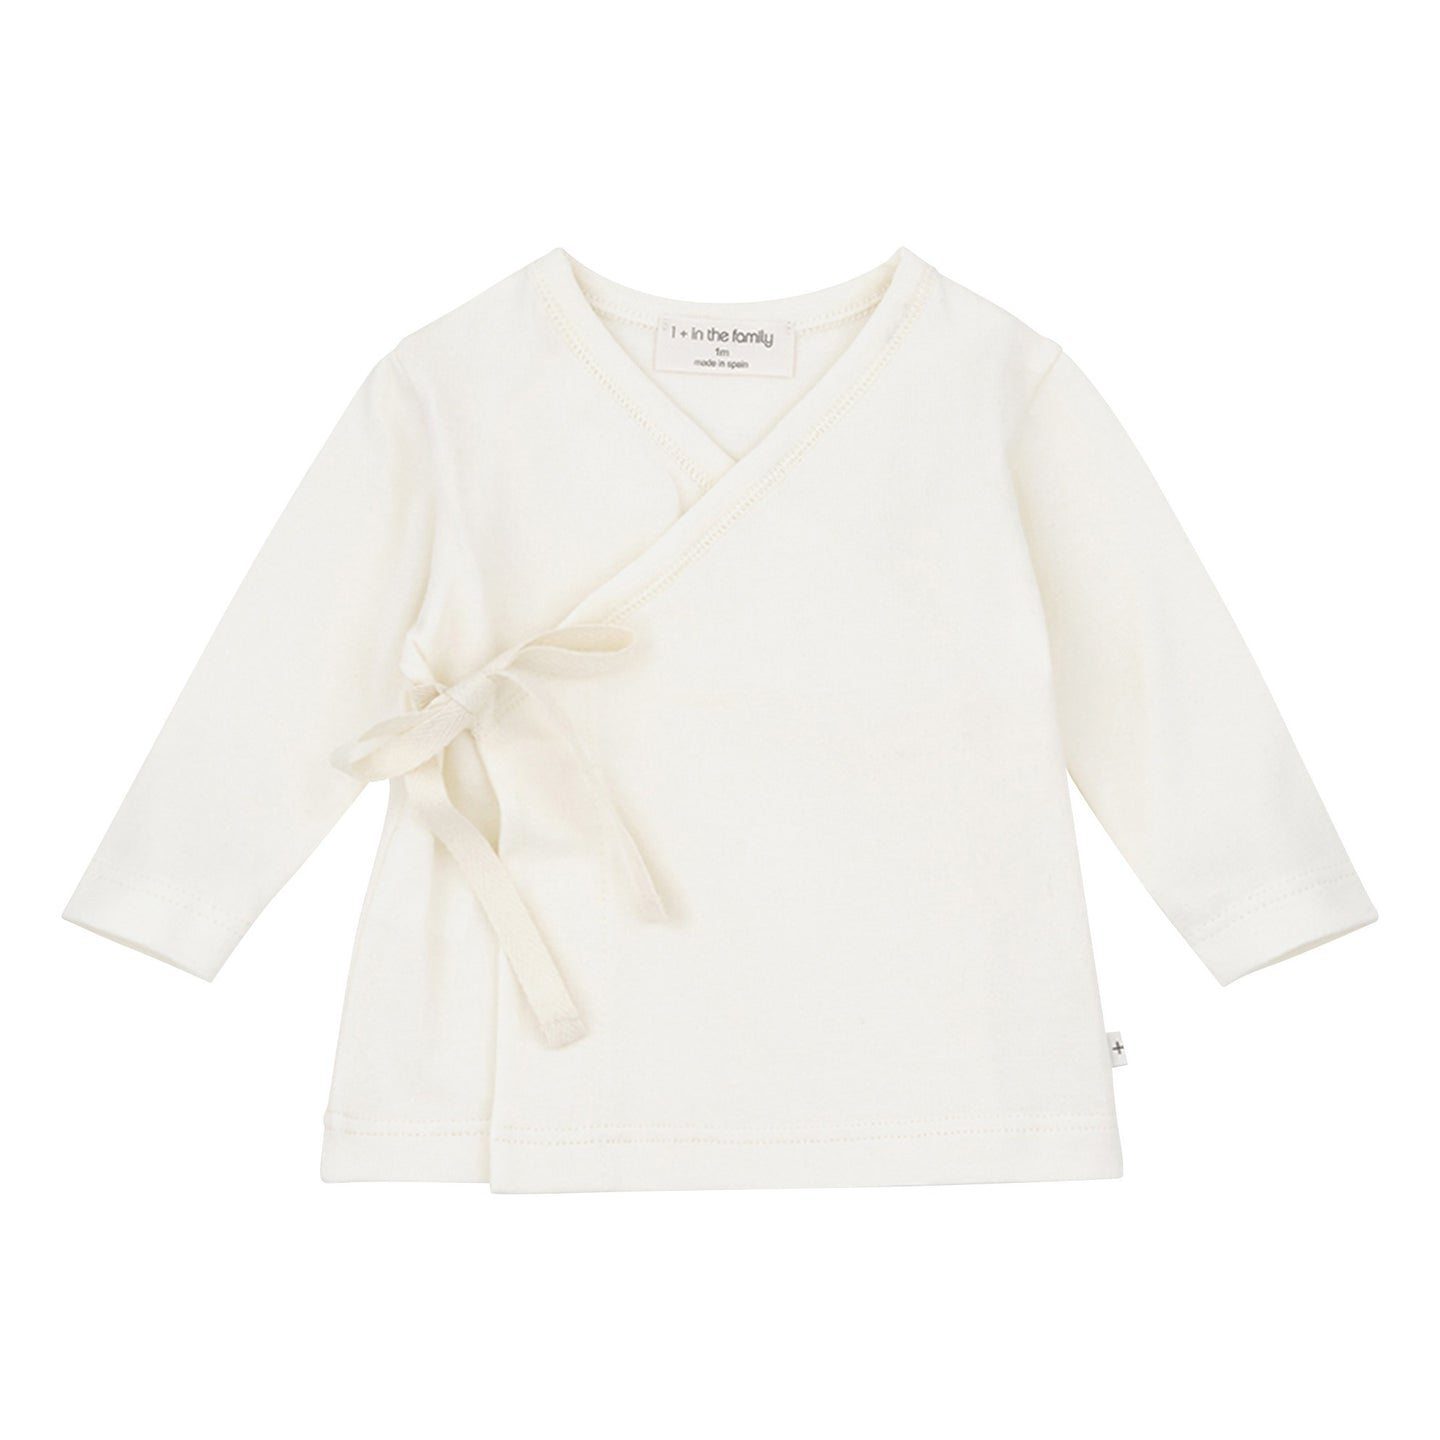 whit3e cross top with ribbon tie for baby